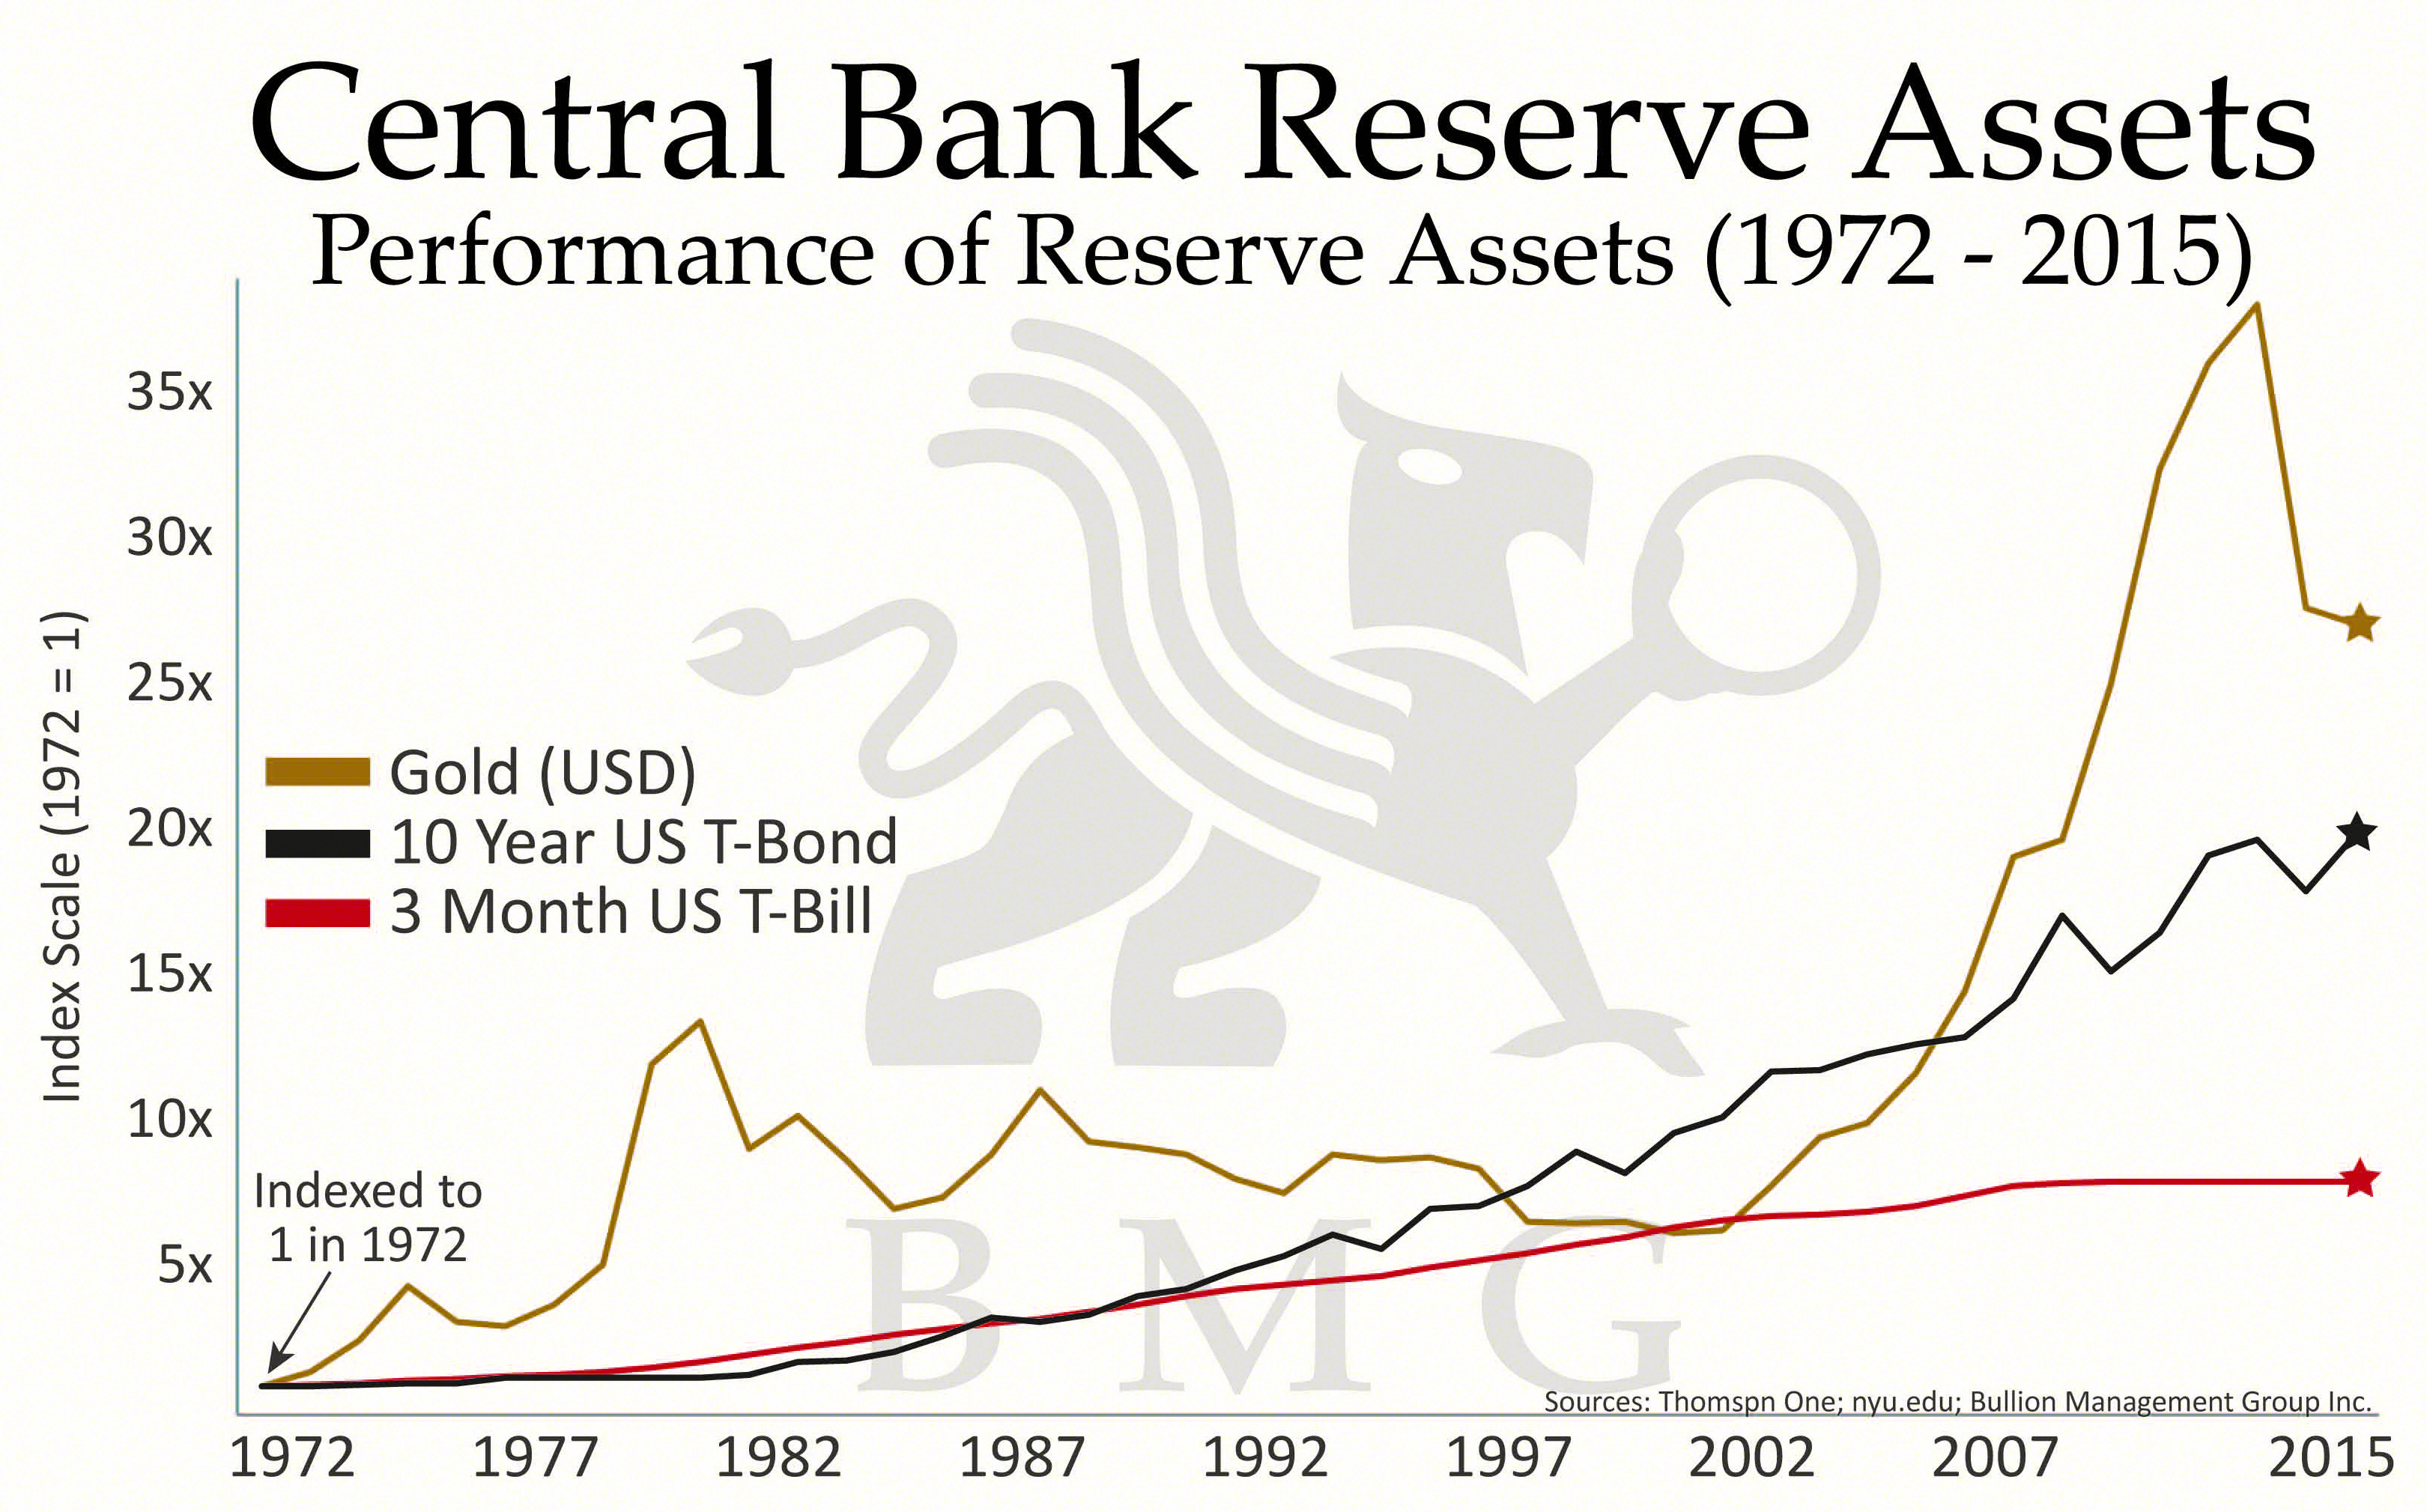 Central bank liquidating assests